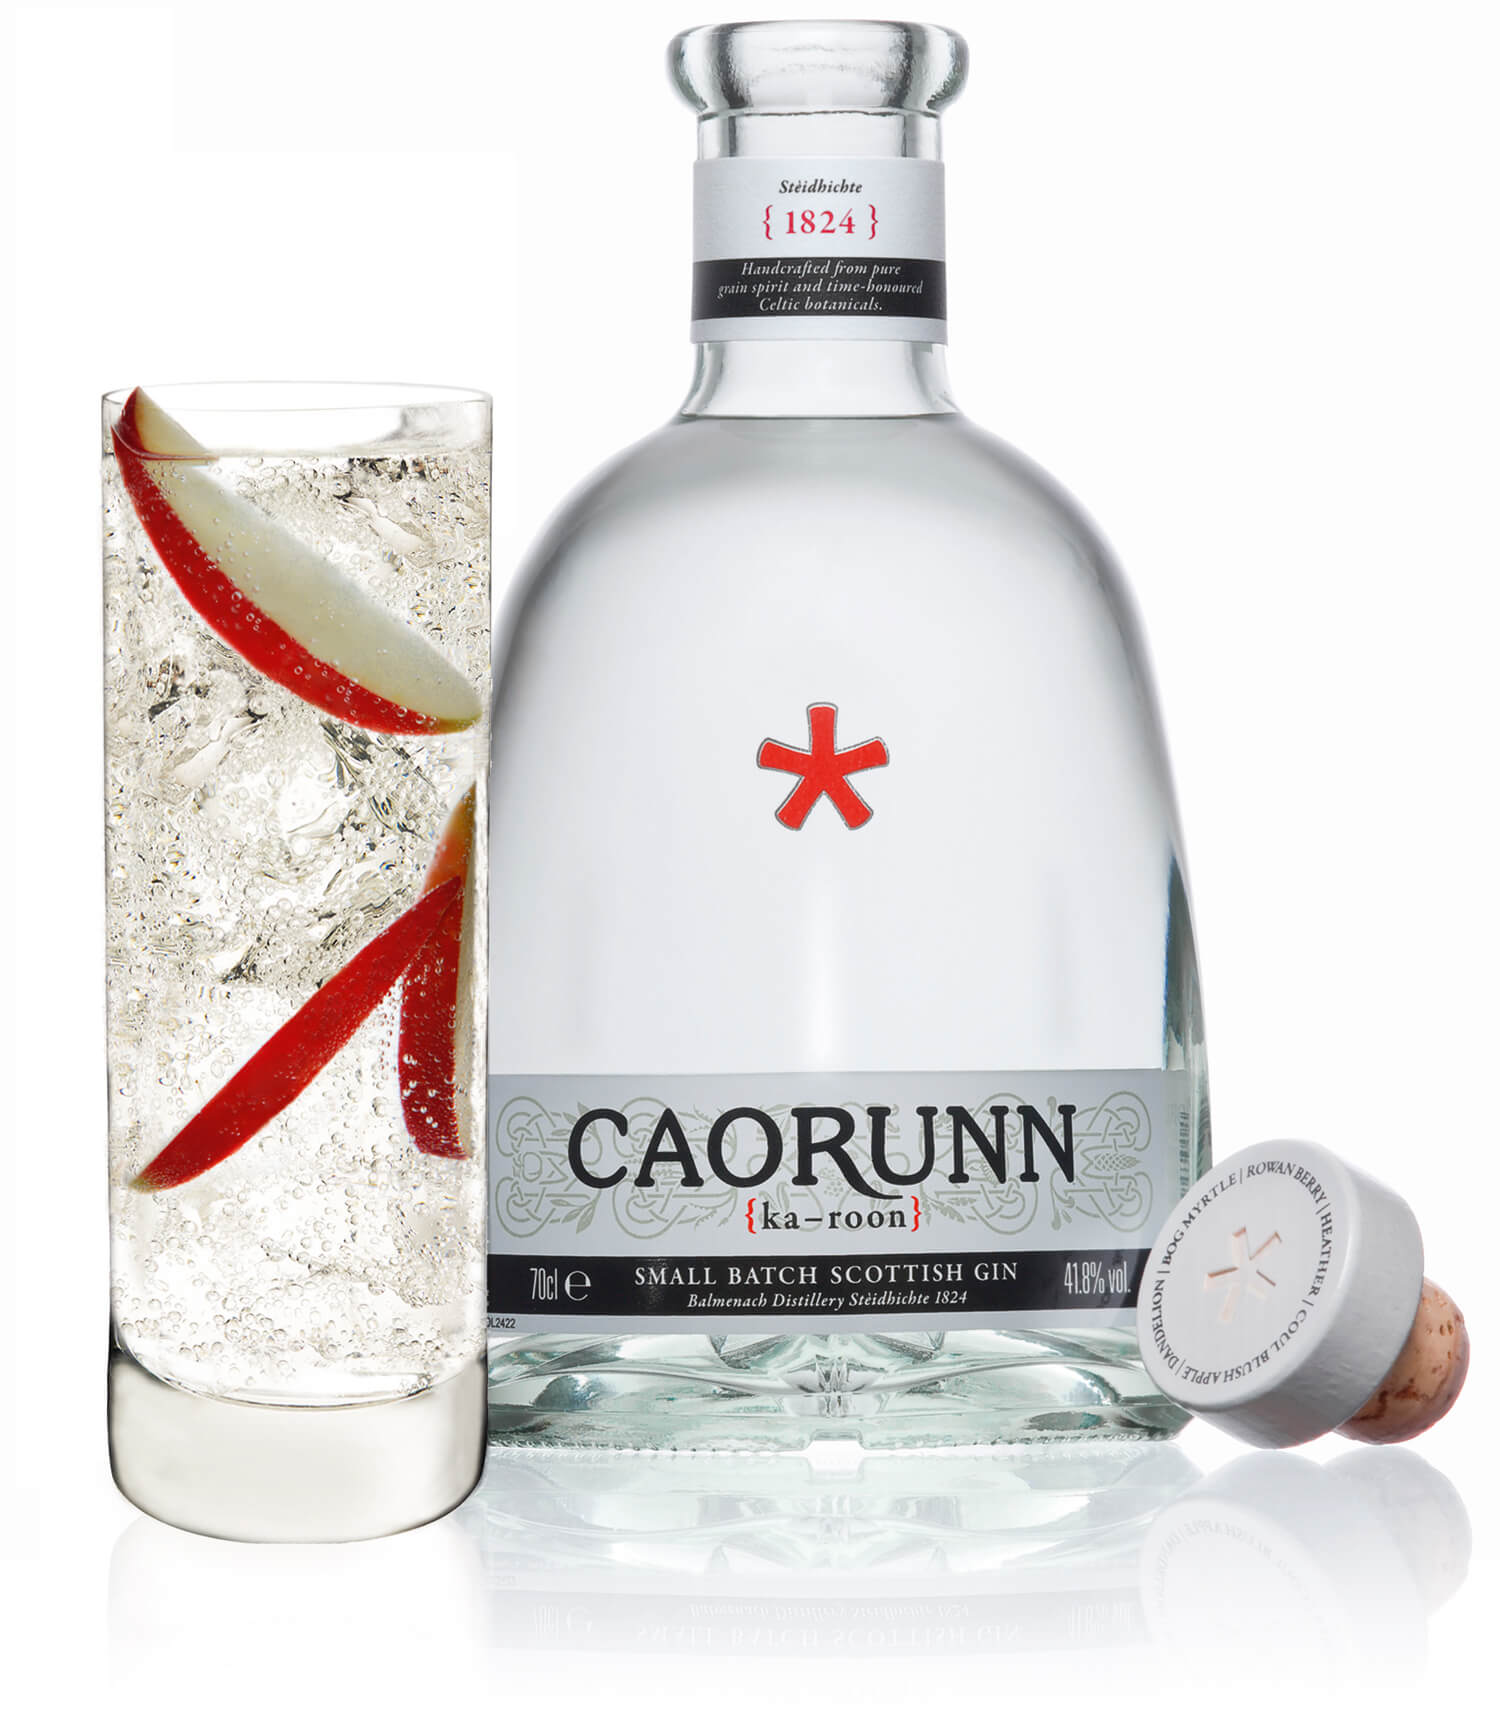 Caorunn Bottle